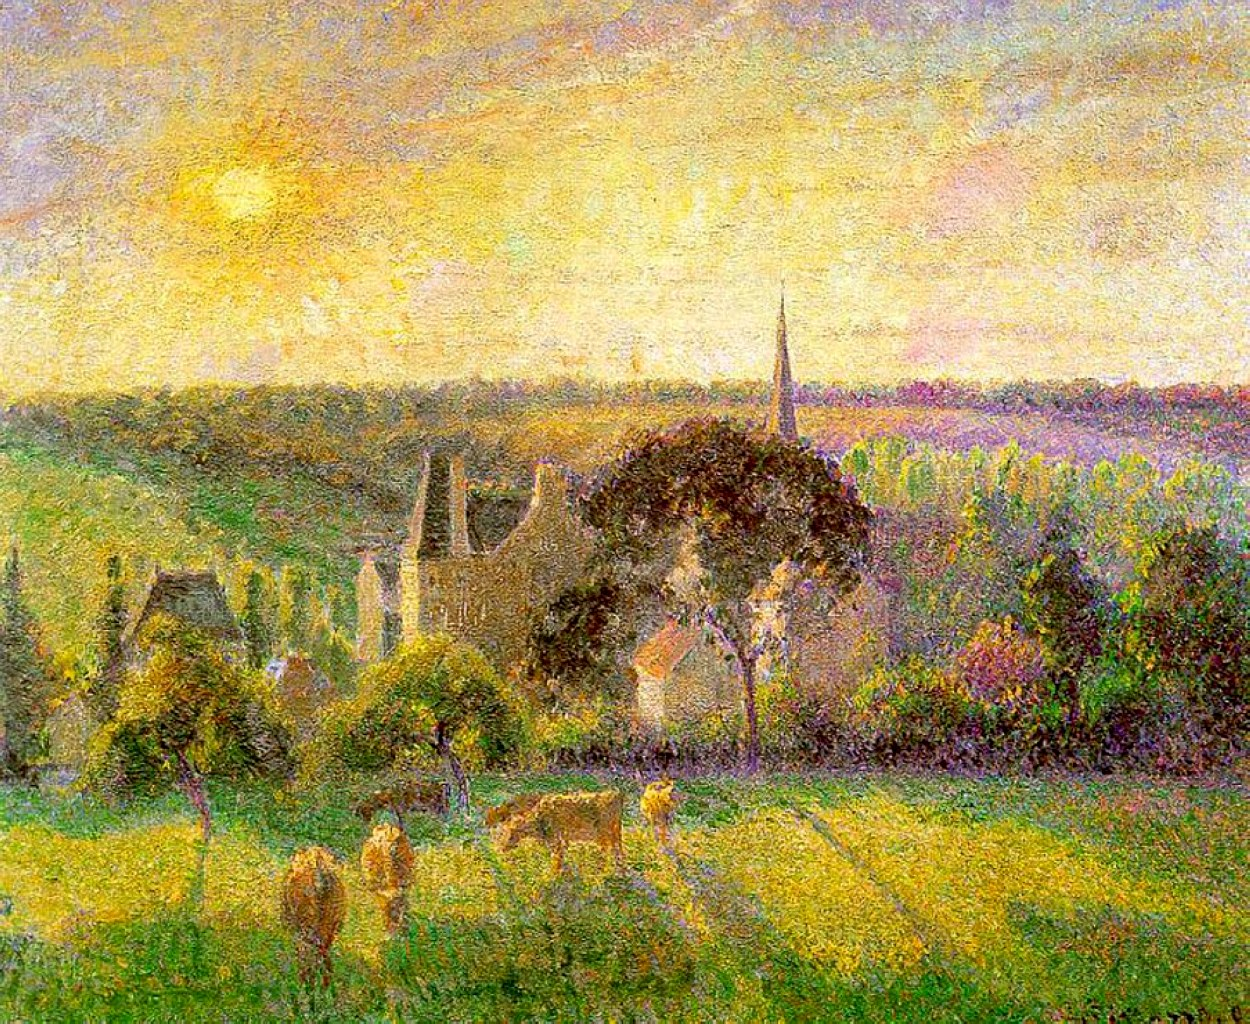 The church and farm of eragny 1895 camille pissarro for Camille pissarro oeuvre